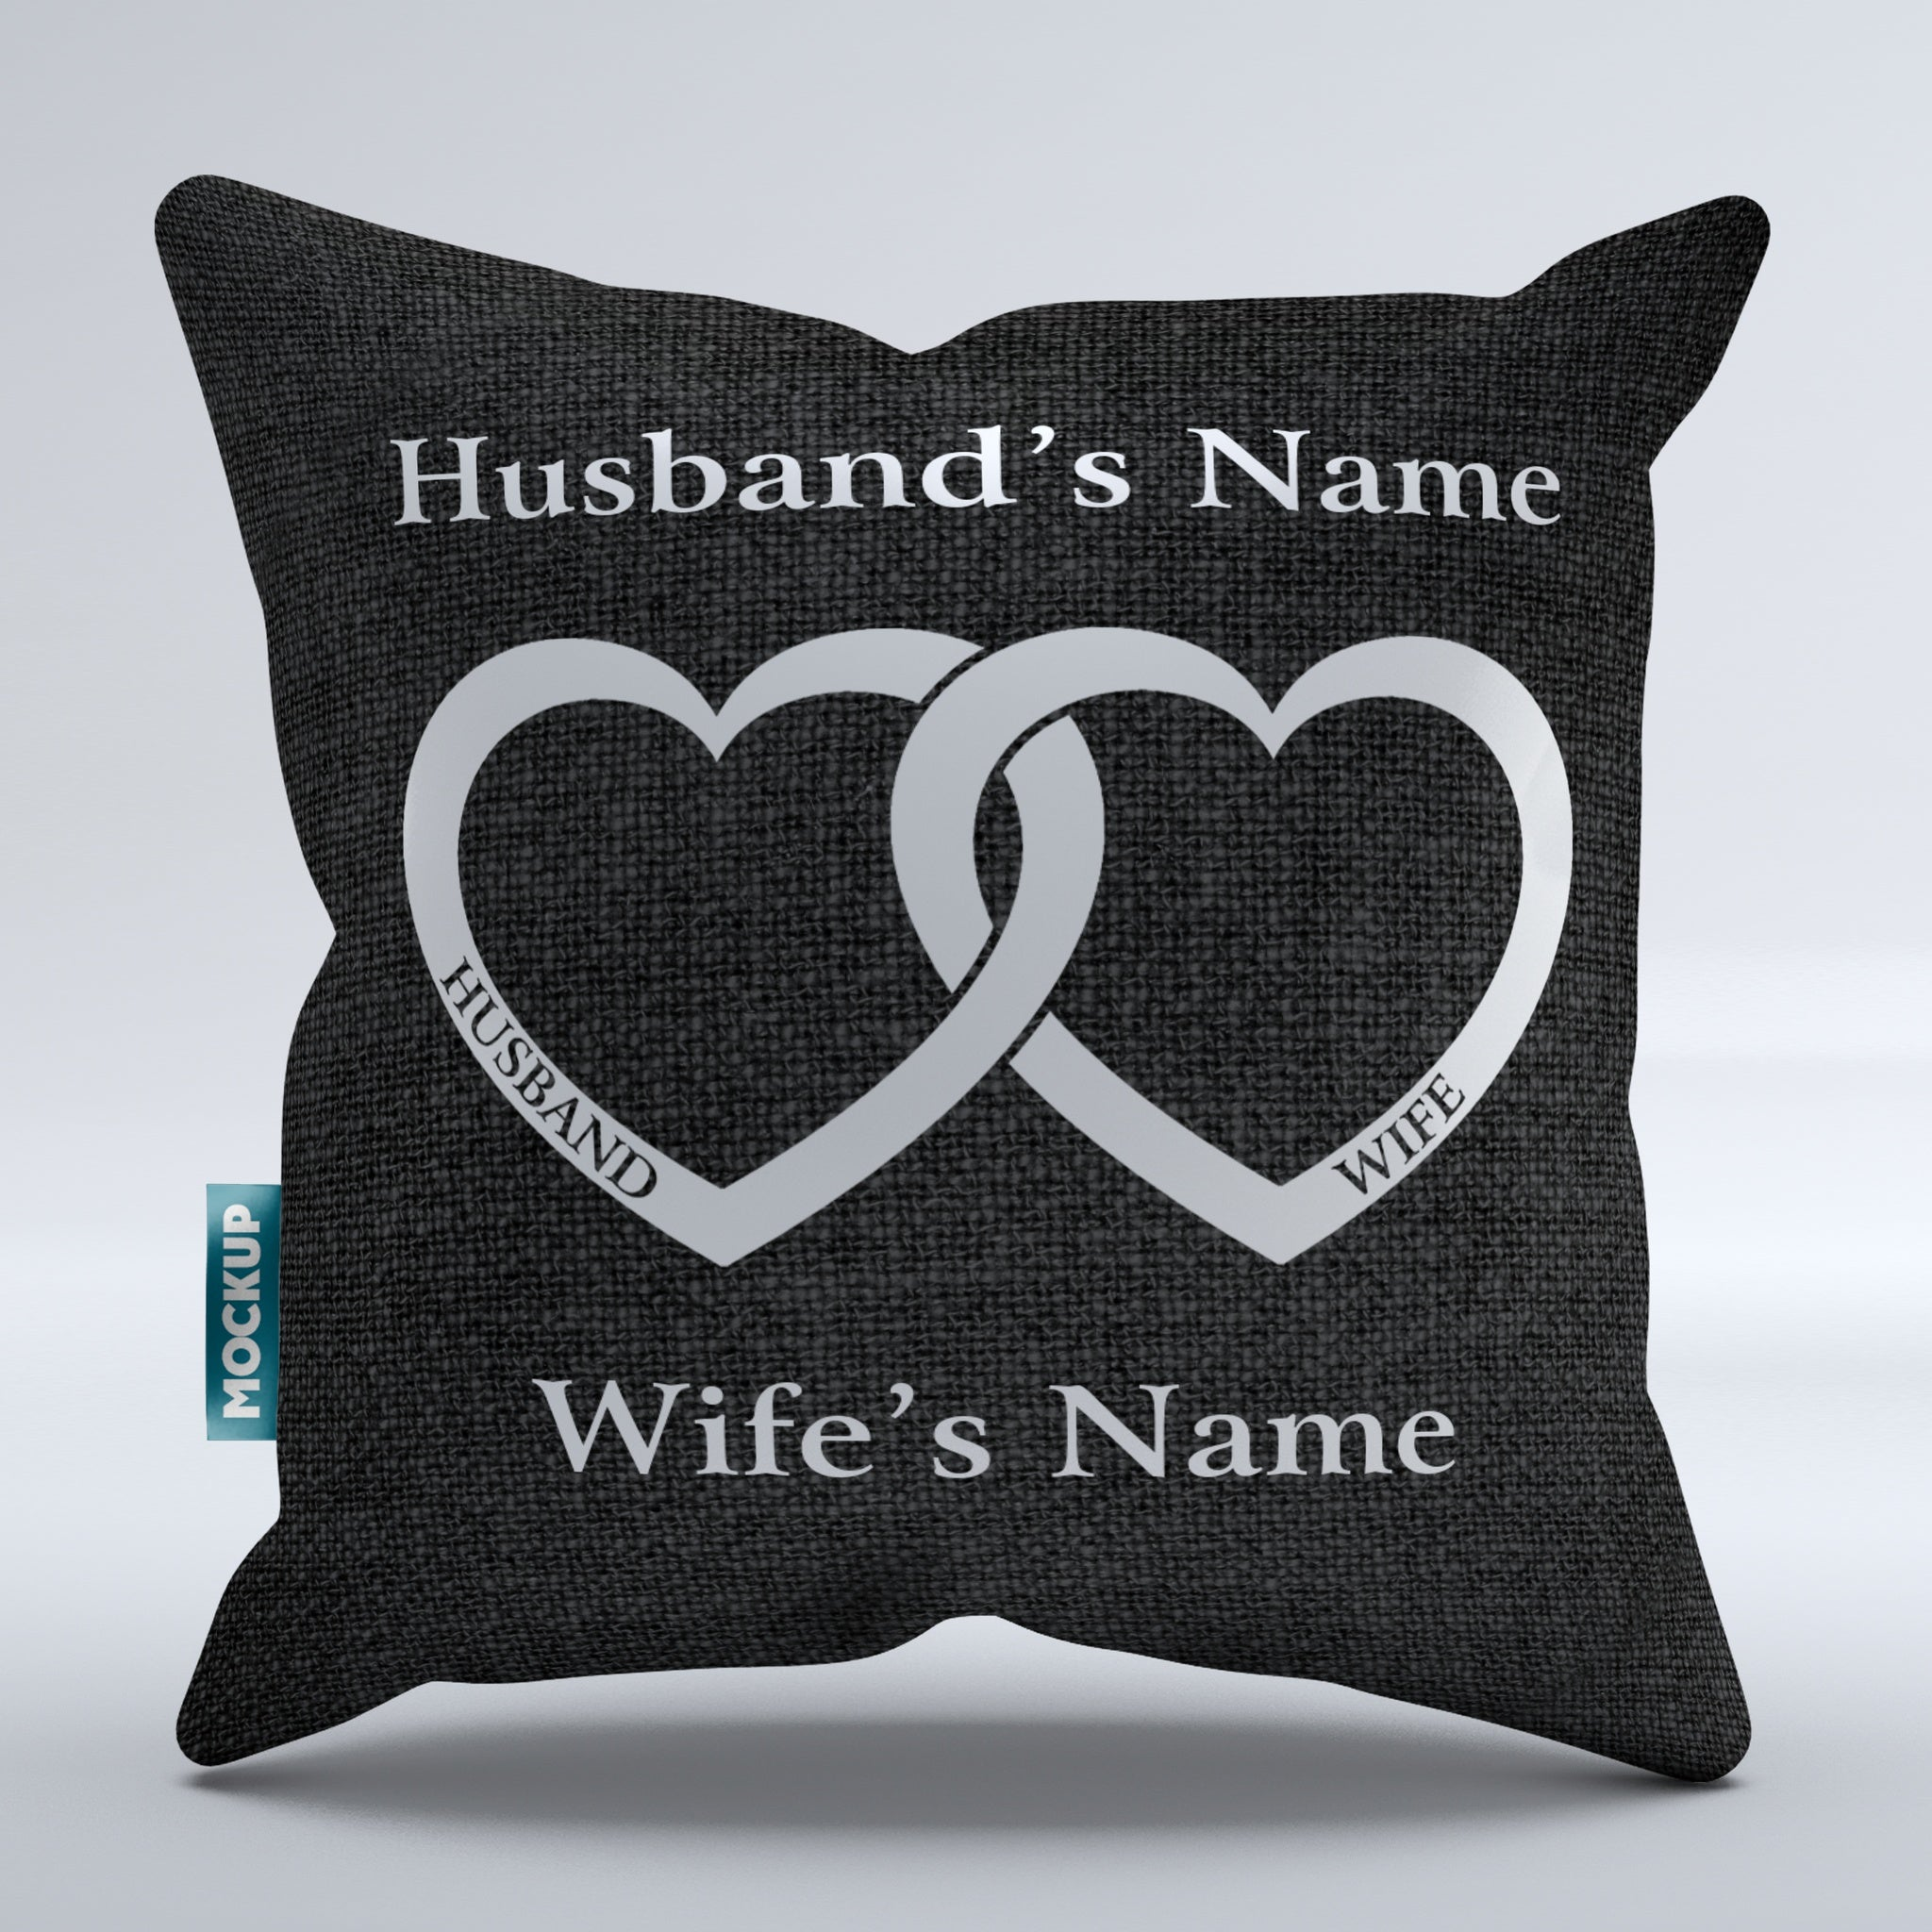 "Personalized Husband and Wife Throw Pillow Cover - 15"" x 15 ..."